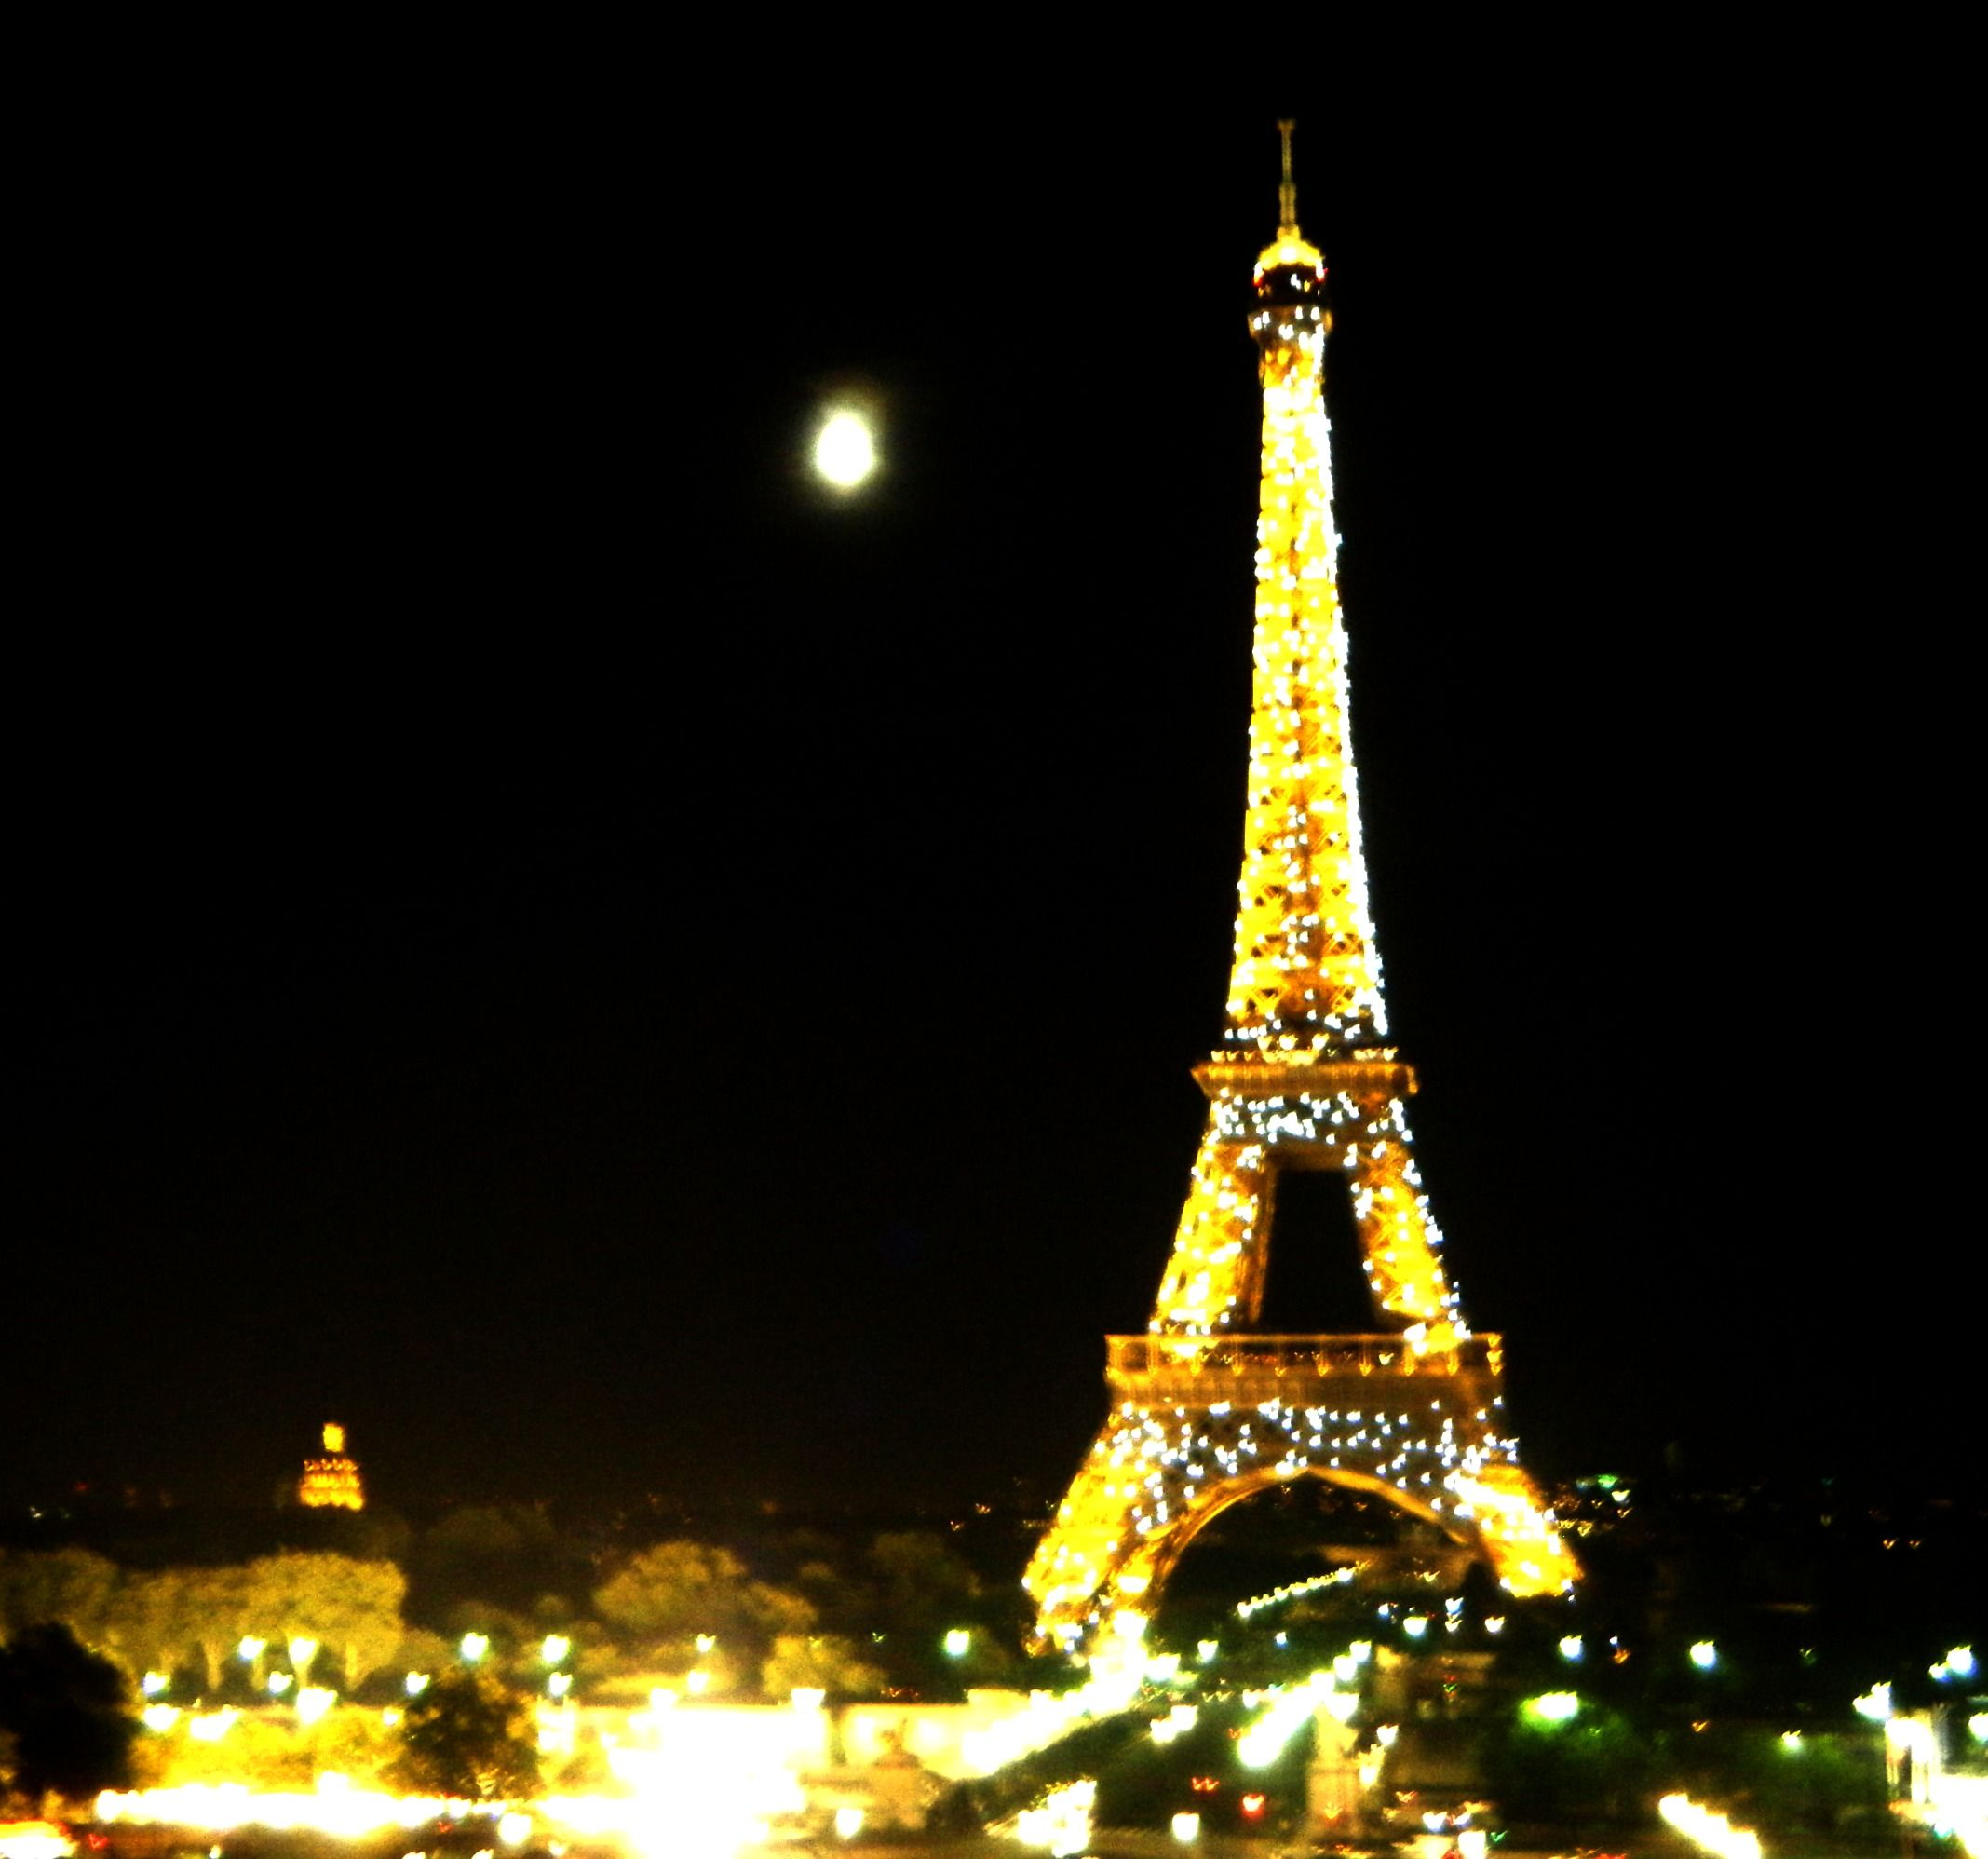 Full moon next to the Eiffel Tower.